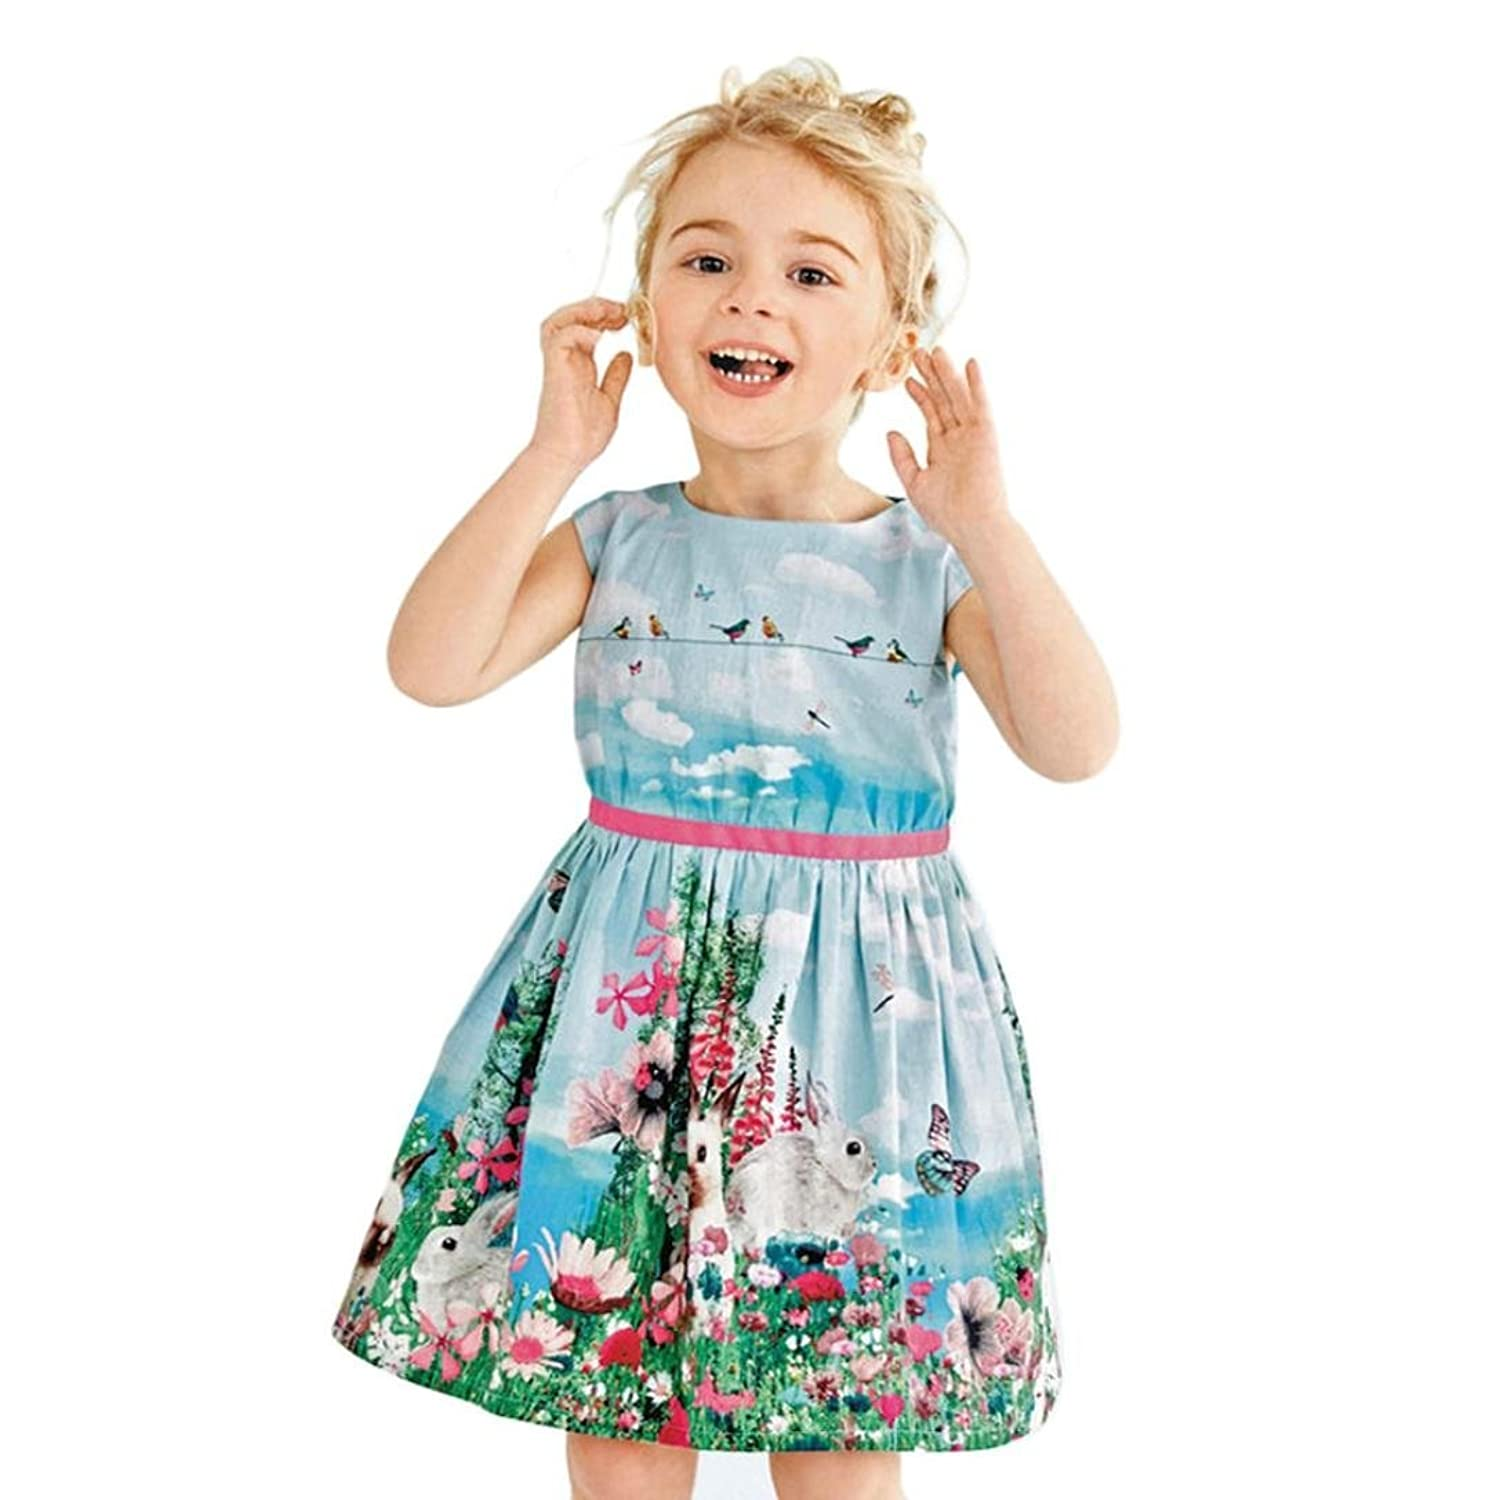 Children's and Baby Boutique. Welcome to our Atterdag Kids! Wondering how we got our name? Our lovely store is nestled in the sunny Danish town of Solvang.